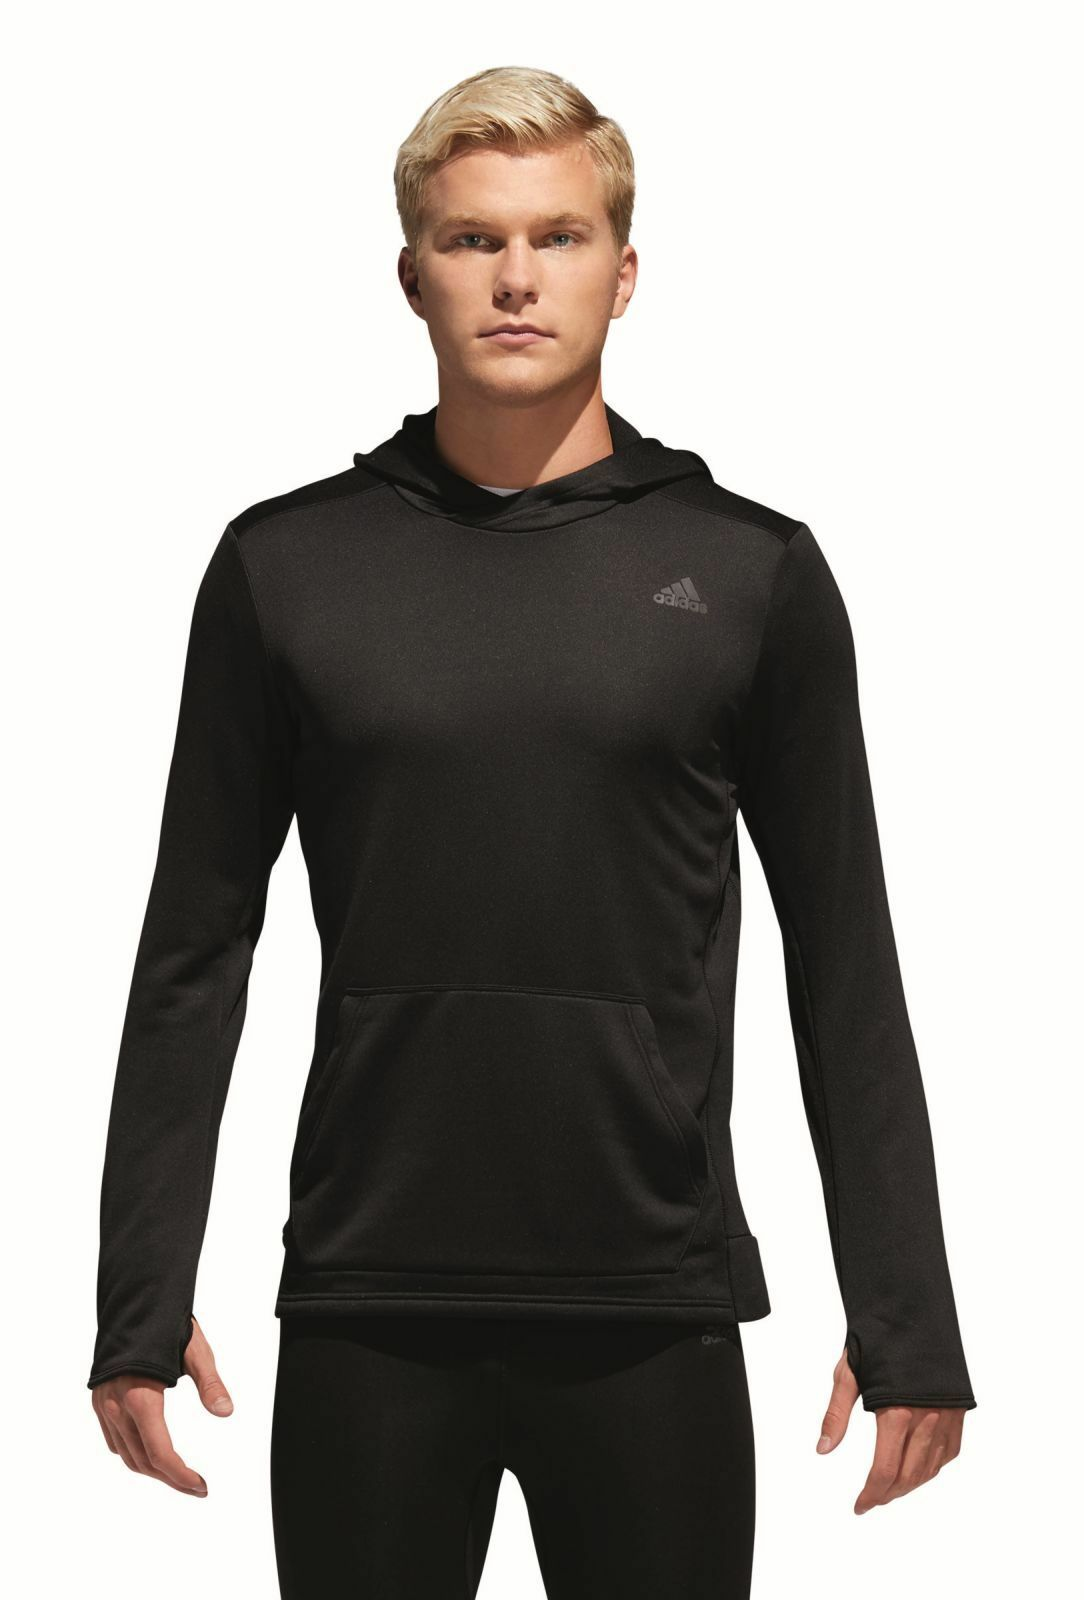 Adidas Performance Hombre  Correr Jersey Capucha Propia The Correr Hoodie M black  to provide you with a pleasant online shopping